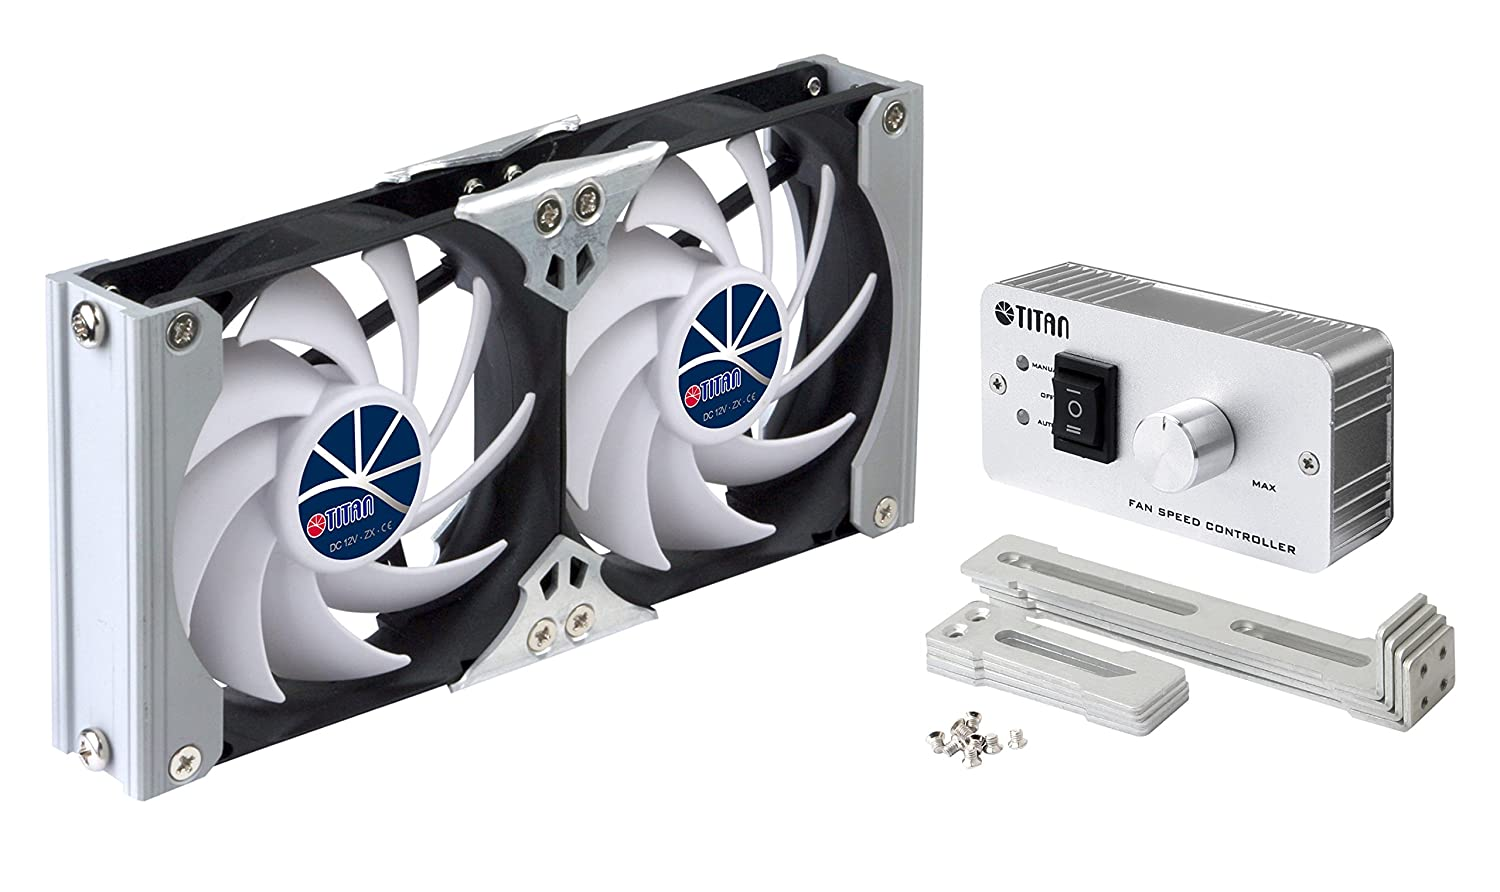 Titan- 12V/ 24V DC 90mm Multi-Function Rack Mounted Double Refrigerator Side Vent Fan with Speed Controller for RV, Motorhome, Caravan- TTC-SC09TZ(A)